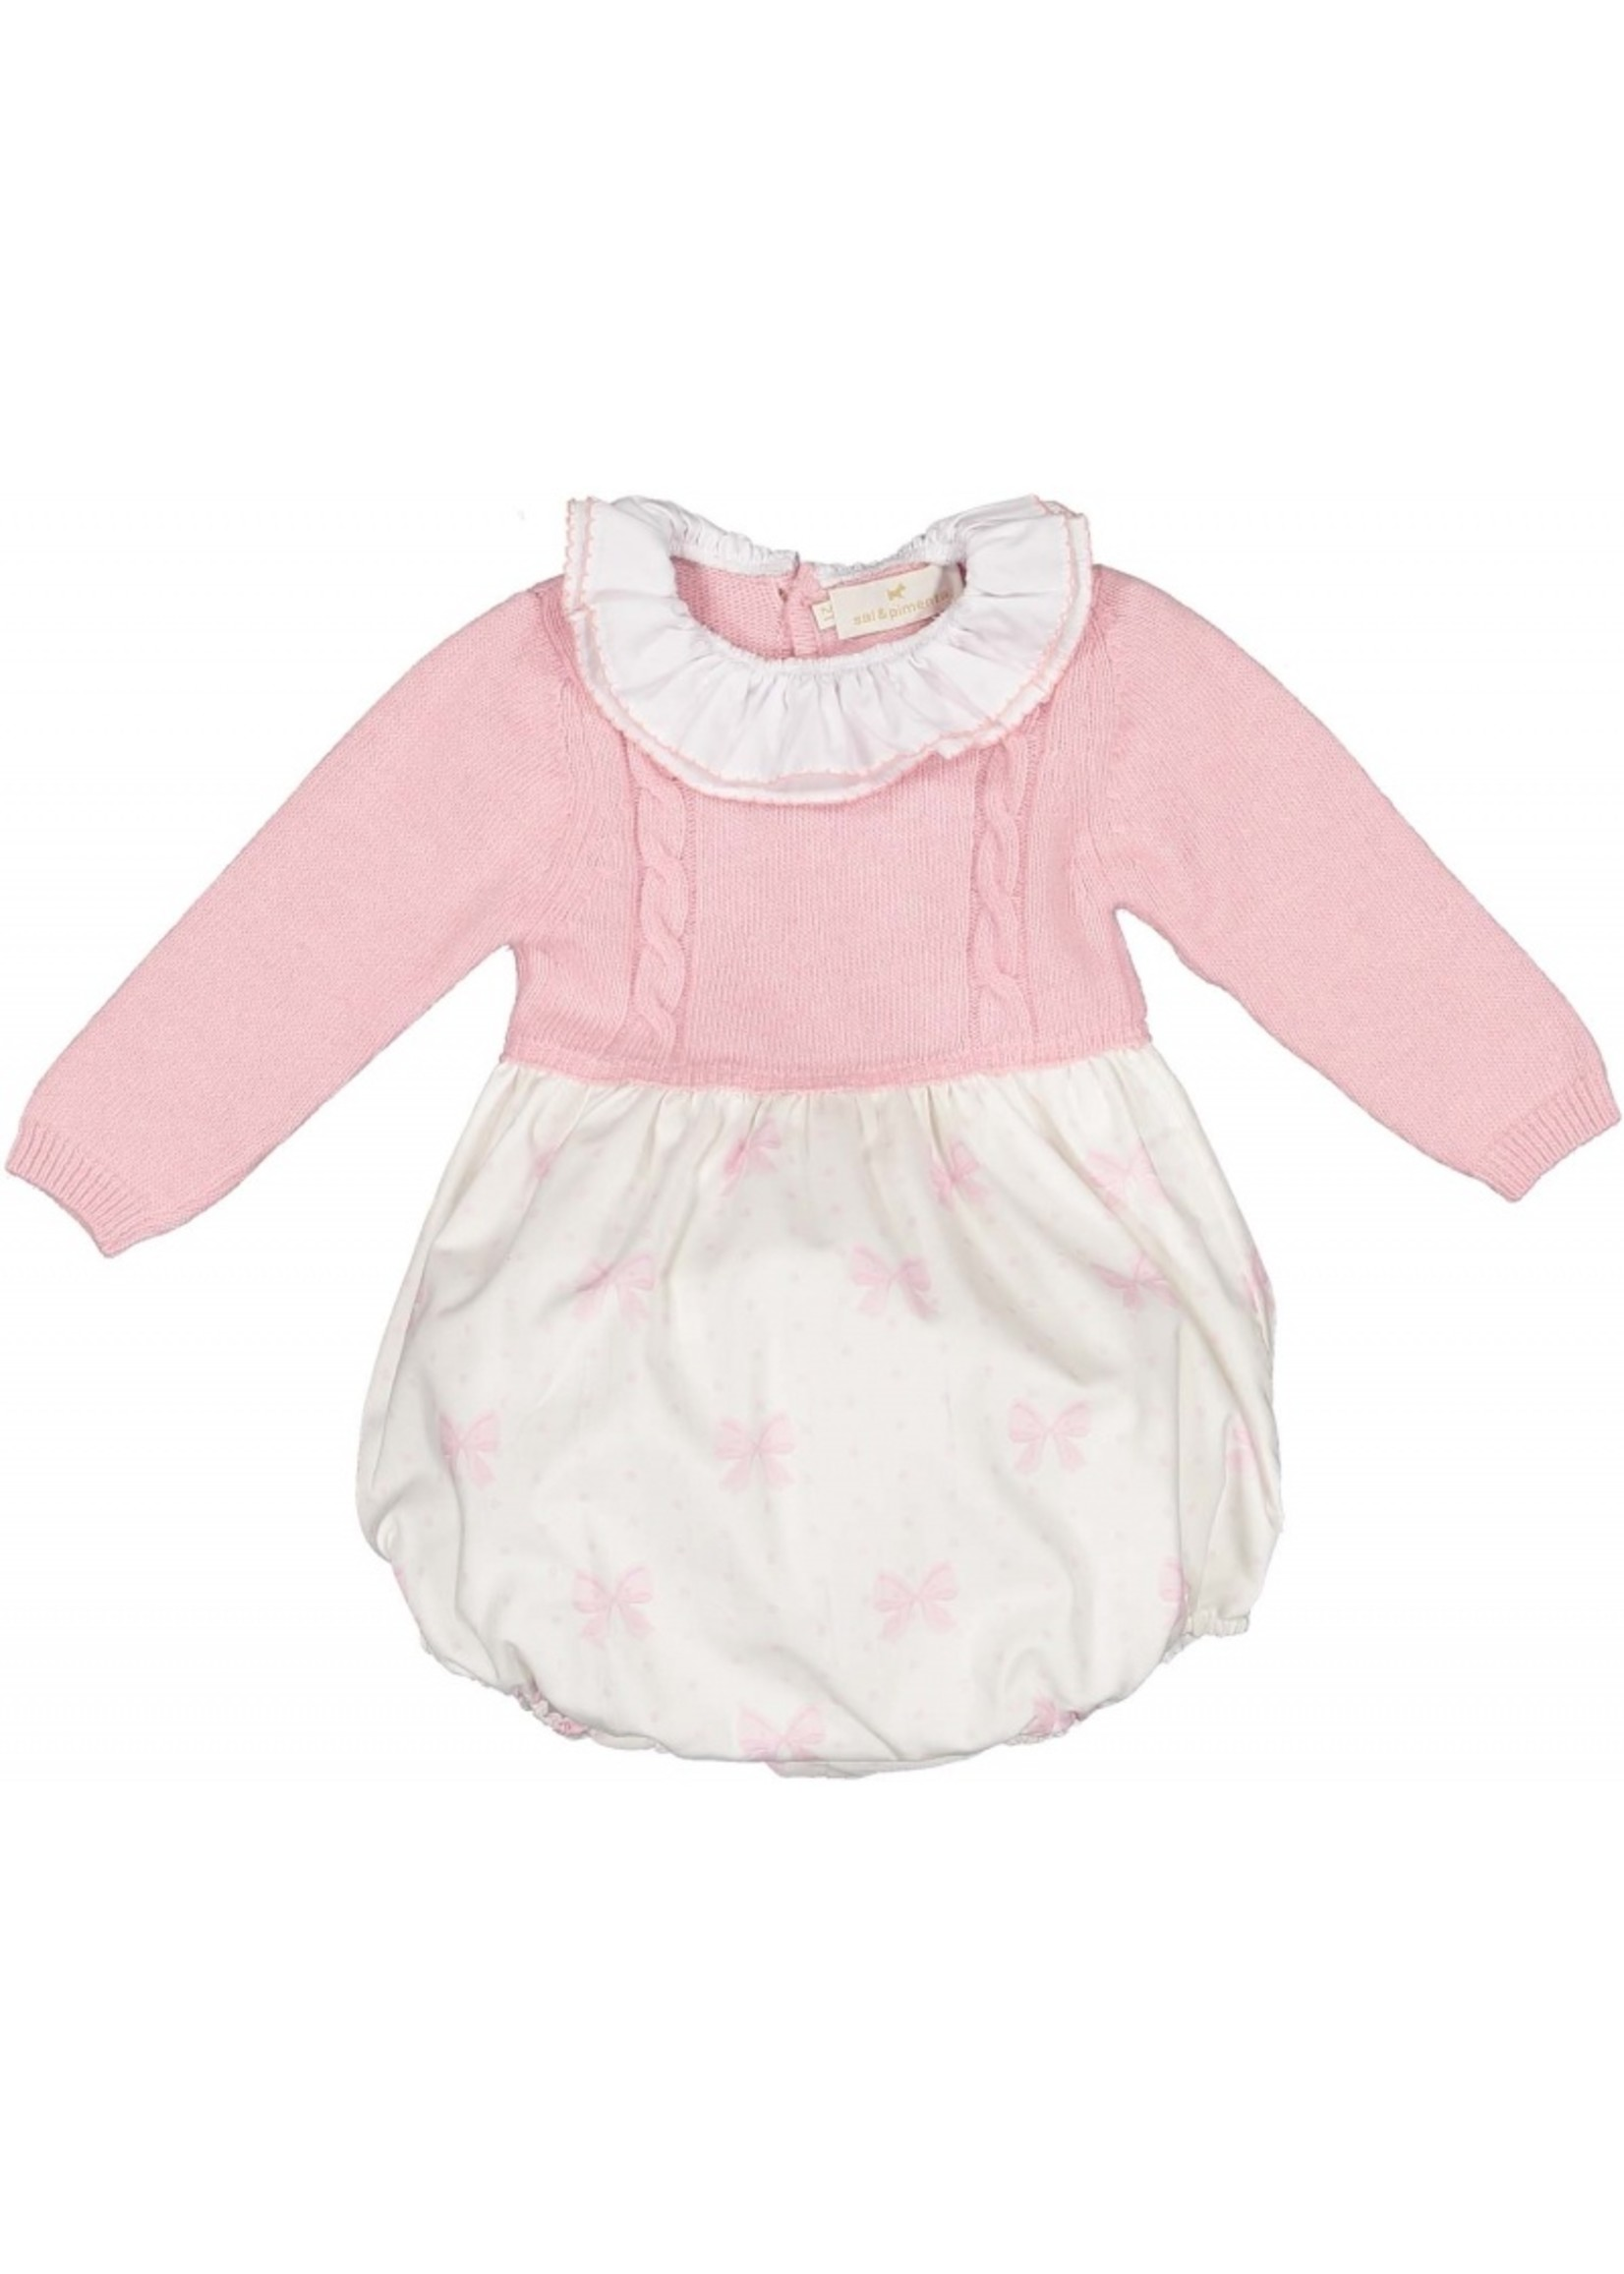 Sal and Pimenta Pink Bow Romper